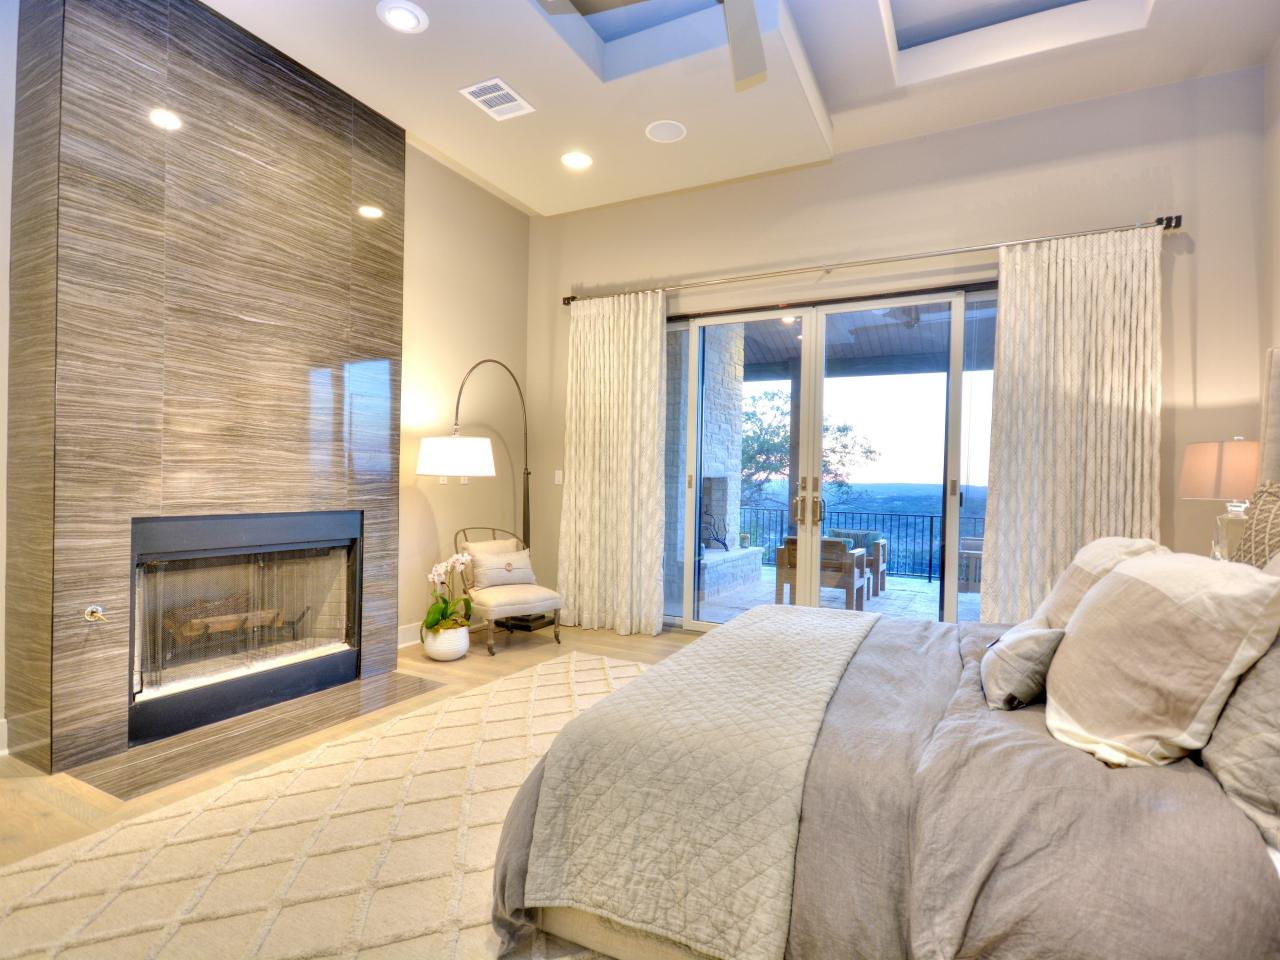 Photos by design custom home concierge hgtv for Rectangular master bedroom